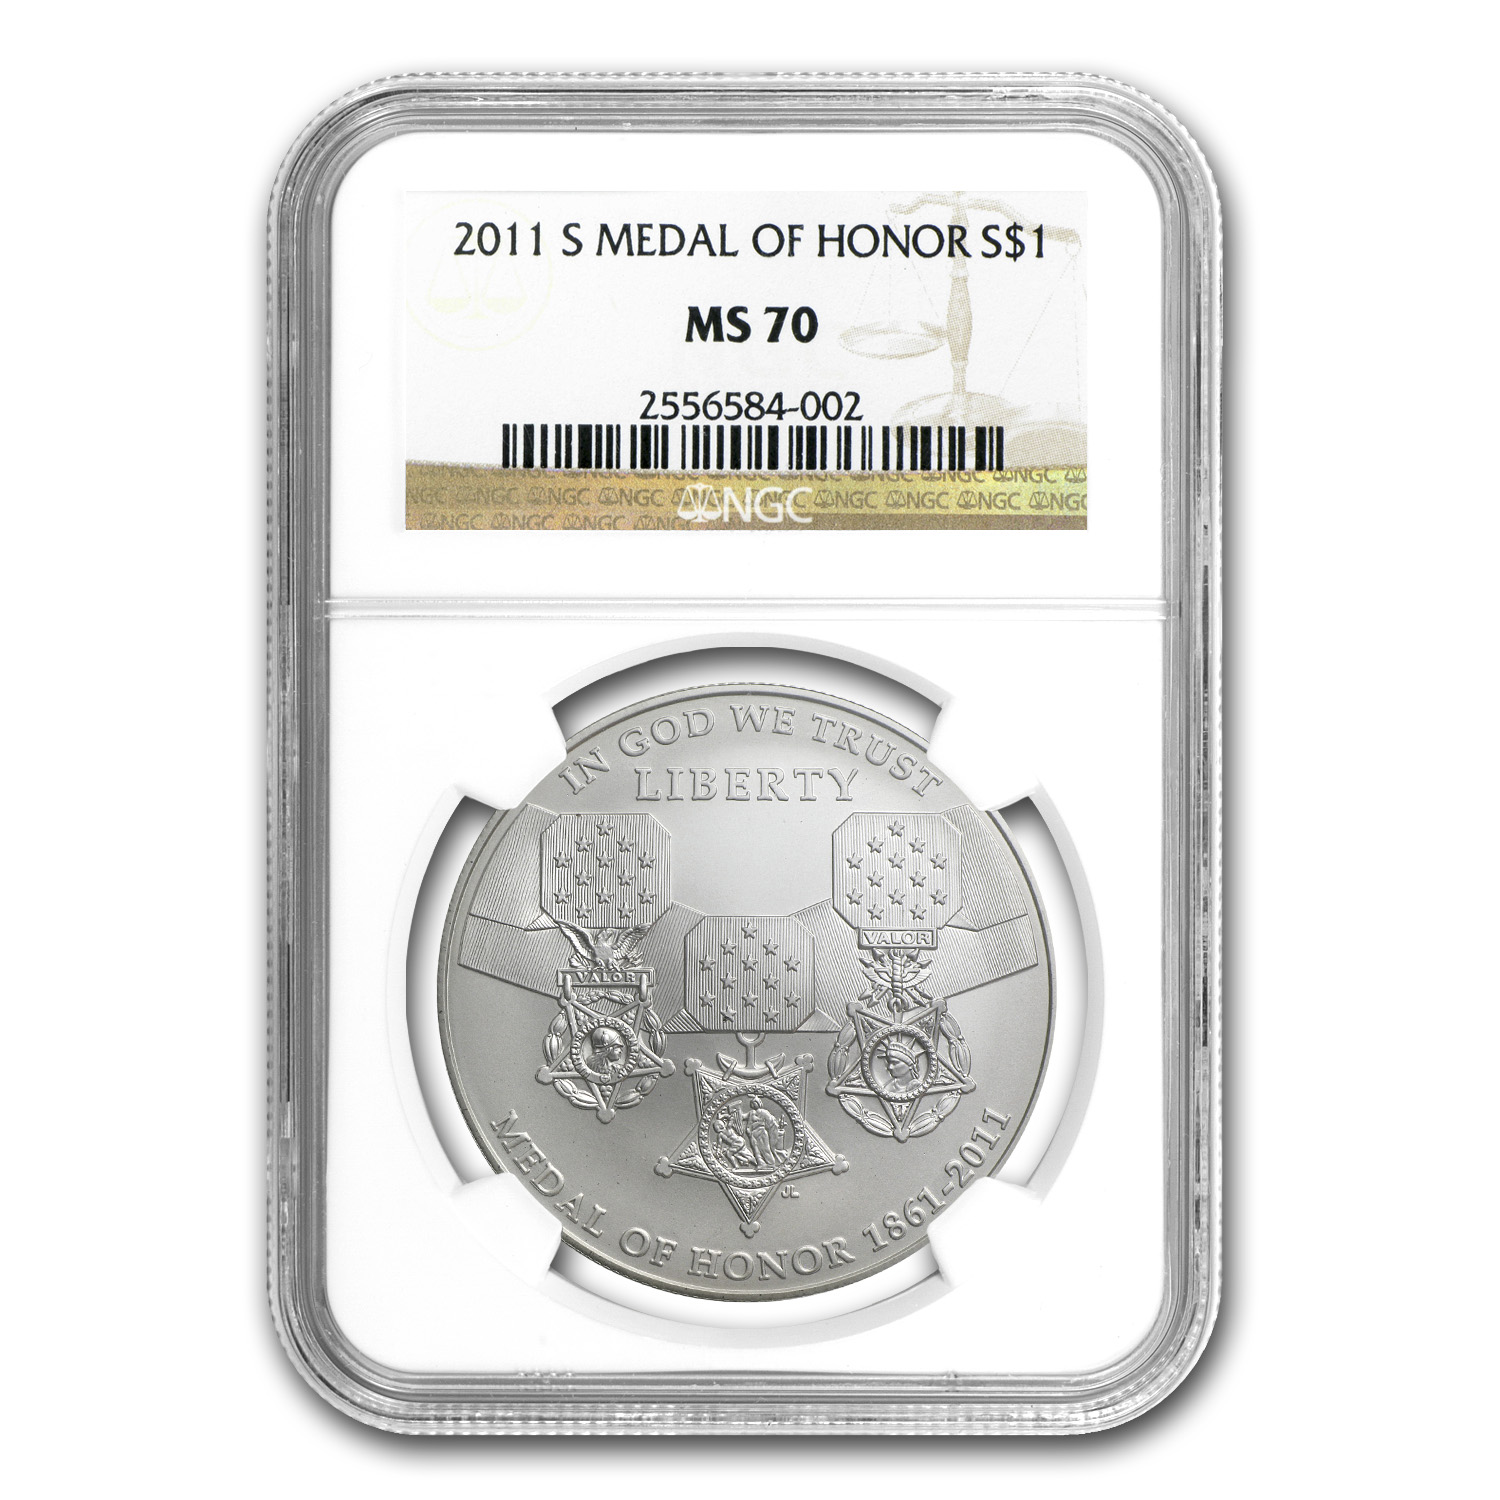 2011-S Medal of Honor $1 Silver Commem MS-70 NGC